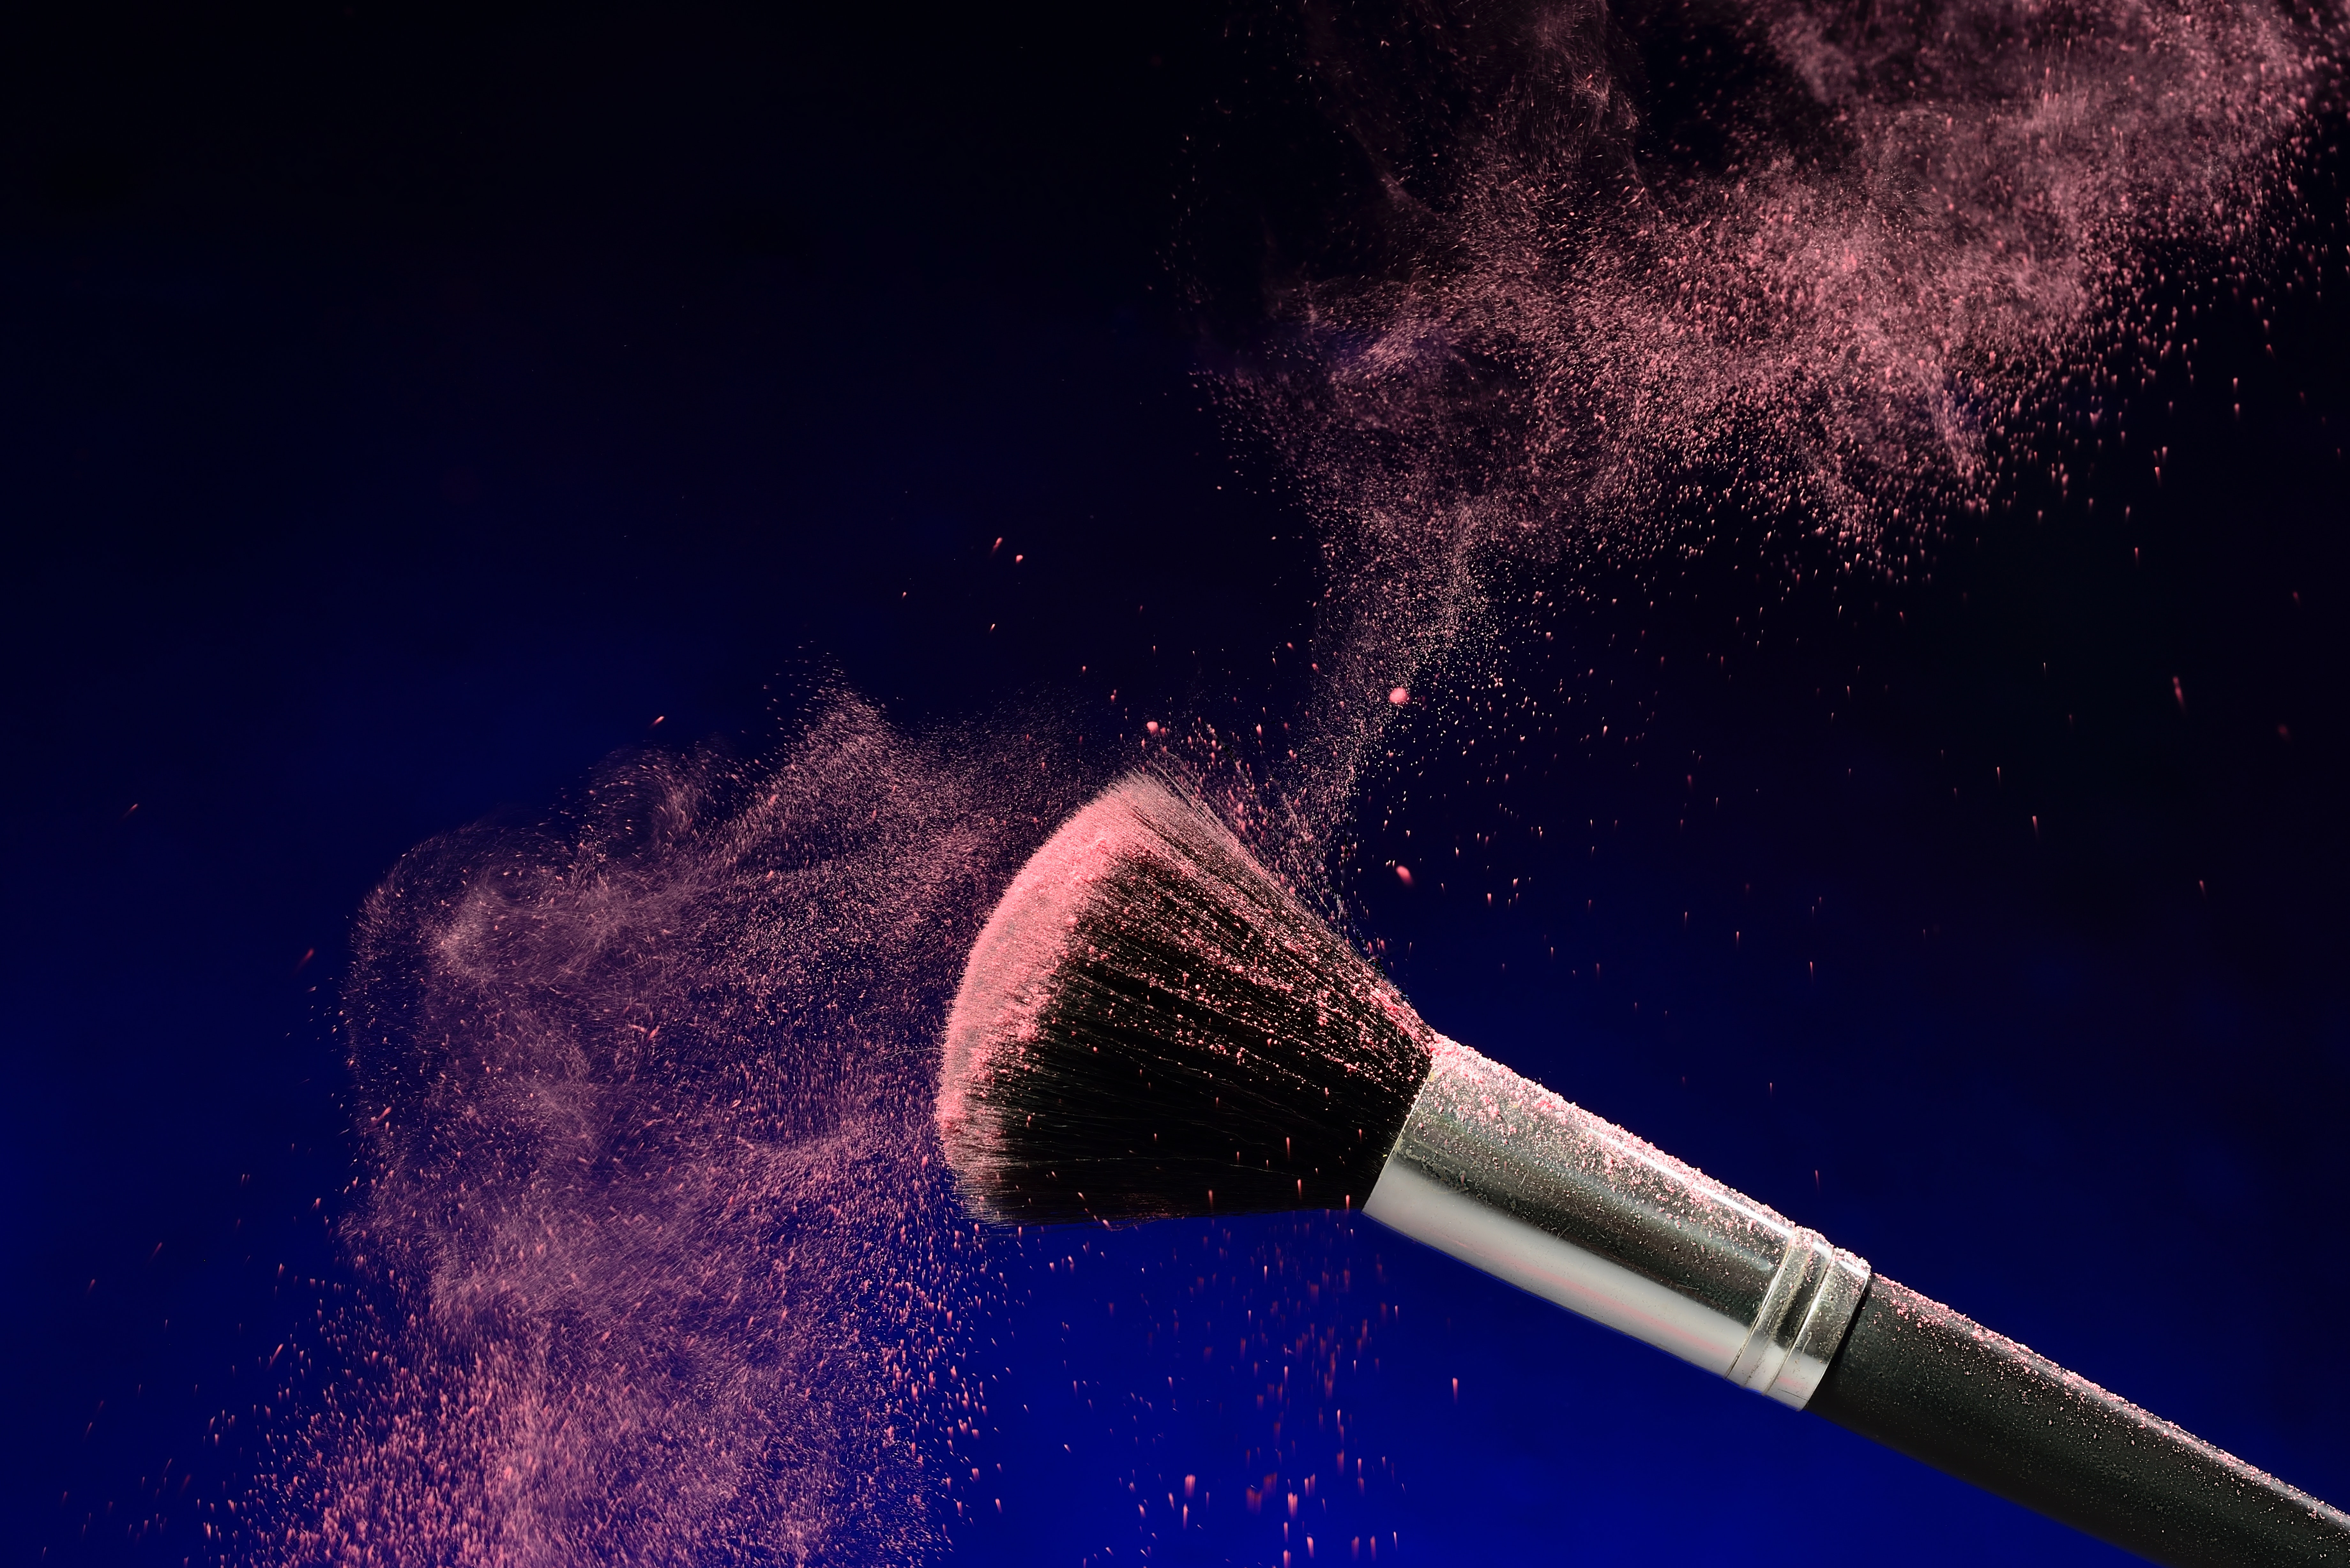 Study Finds Half of all U.S. and Canadian Cosmetics Contain PFAS